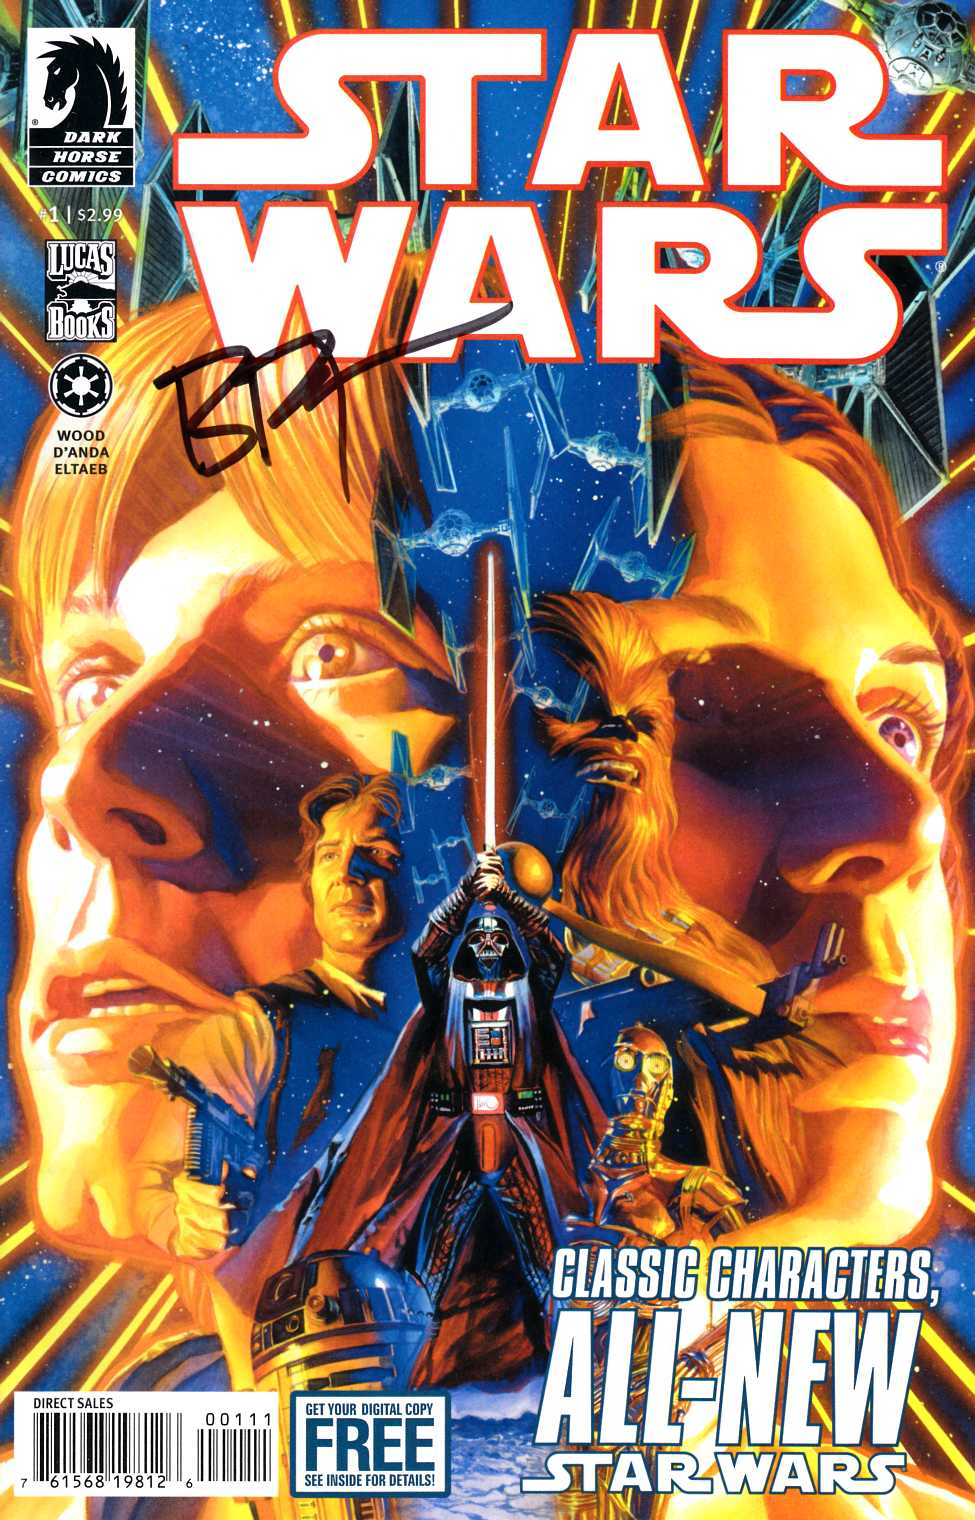 Star Wars #1 Brian Wood Signed Edition [Dark Horse Comic] LARGE